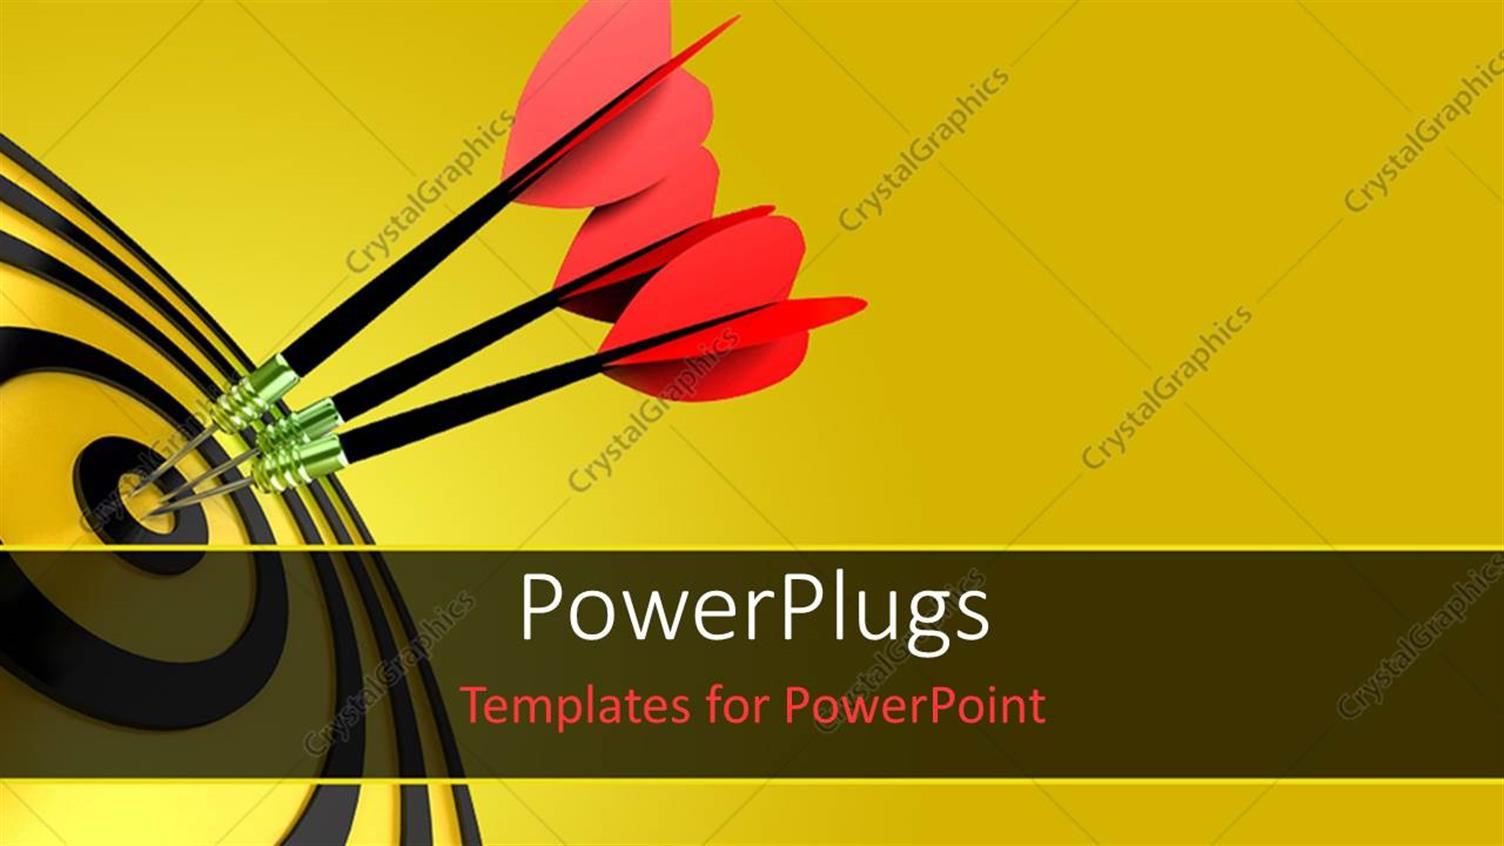 PowerPoint Template Displaying Three Pink Colored Darts Hitting the Middle of a Yellow and Black Colored Dart Board